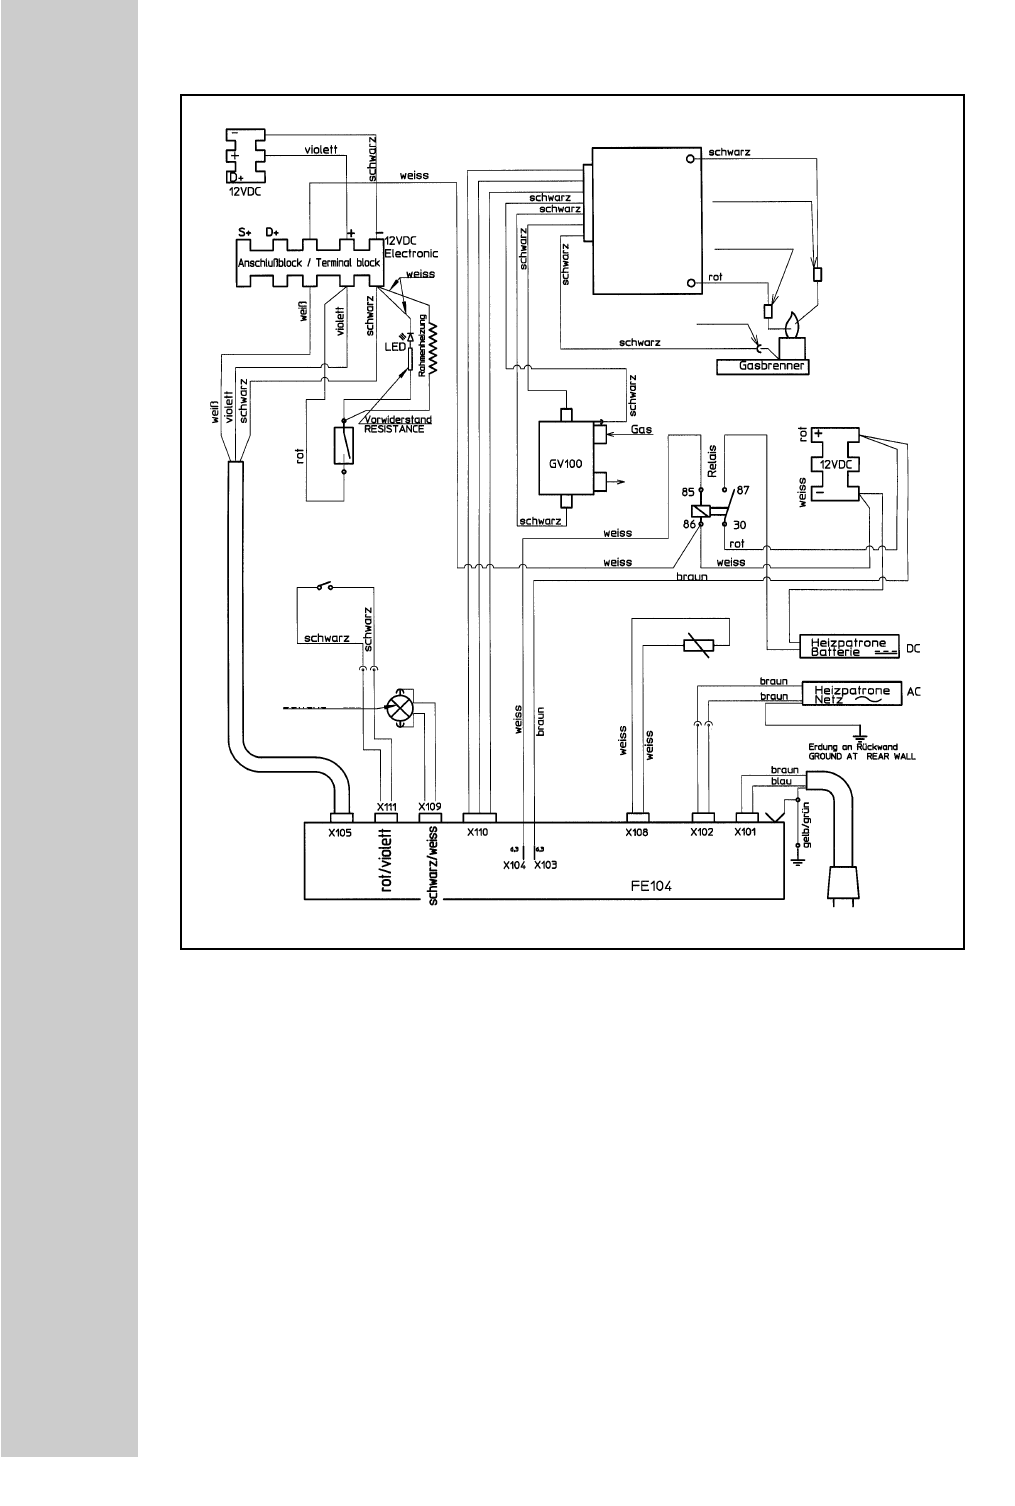 page 28 of dometic refrigerator rm 7655 l user guide